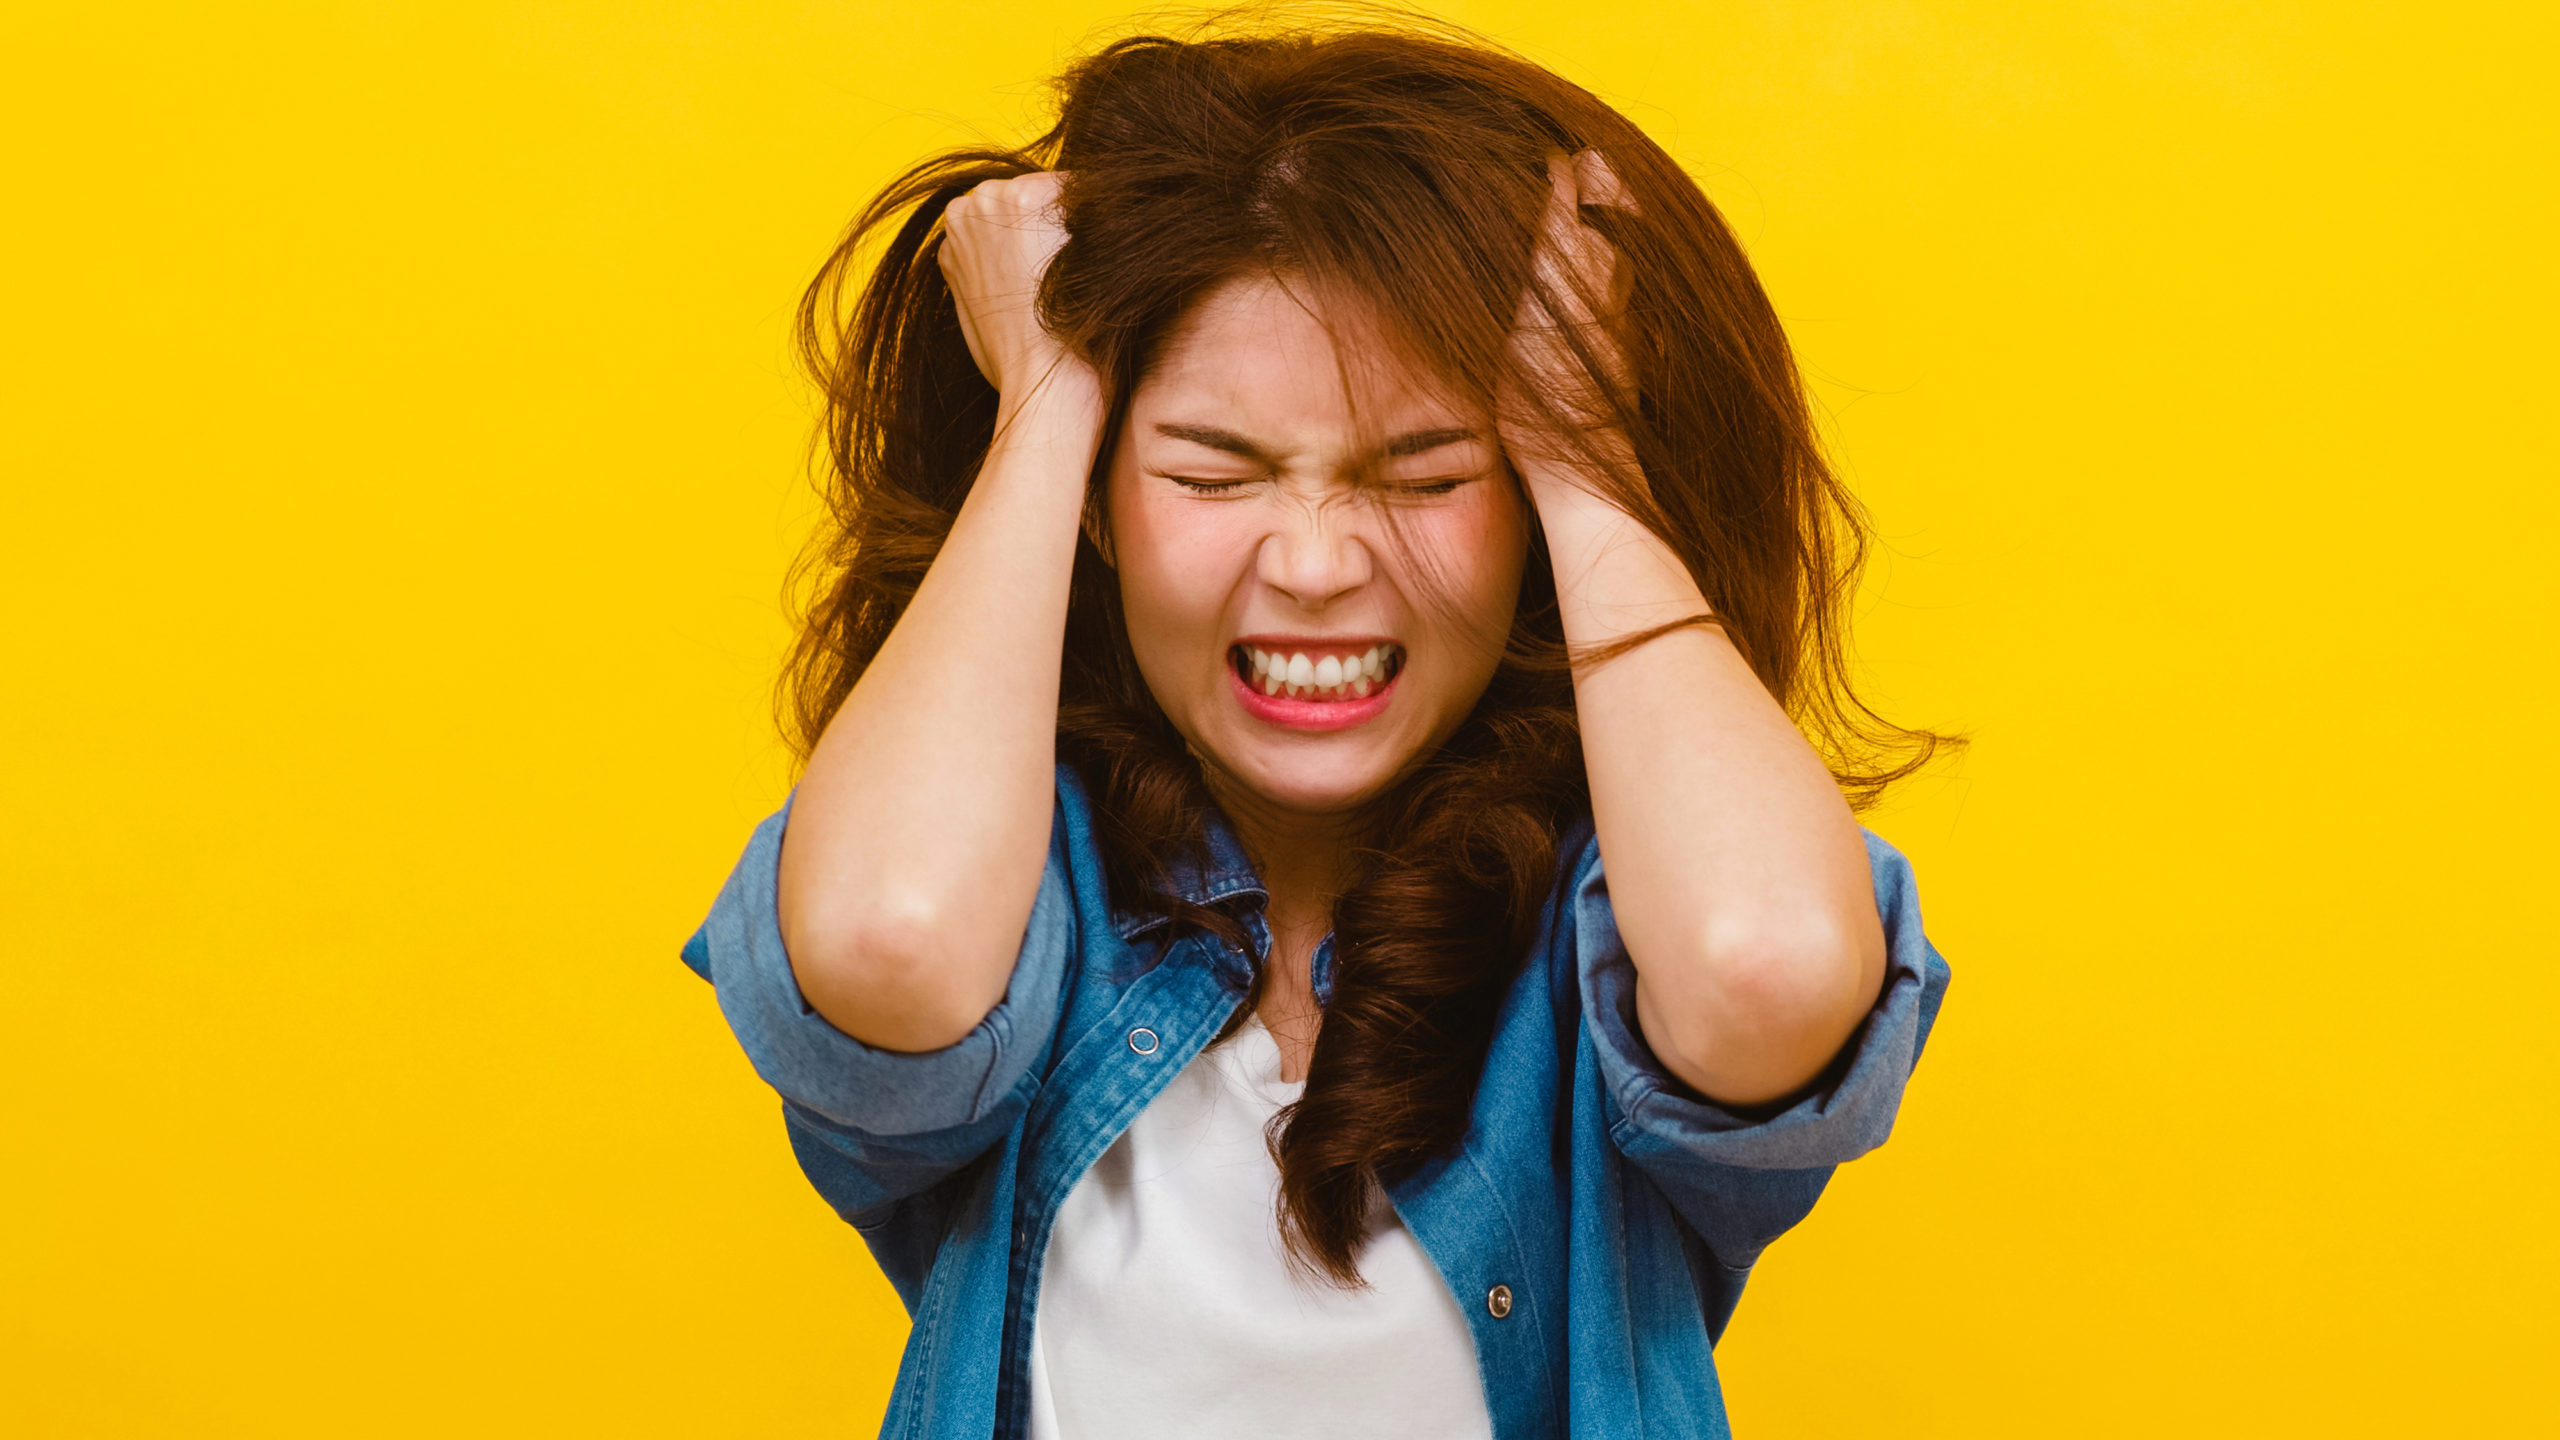 portrait young asian lady with negative expression excited screaming crying emotional angry casual clothing looking camera yellow wall facial expression concept scaled